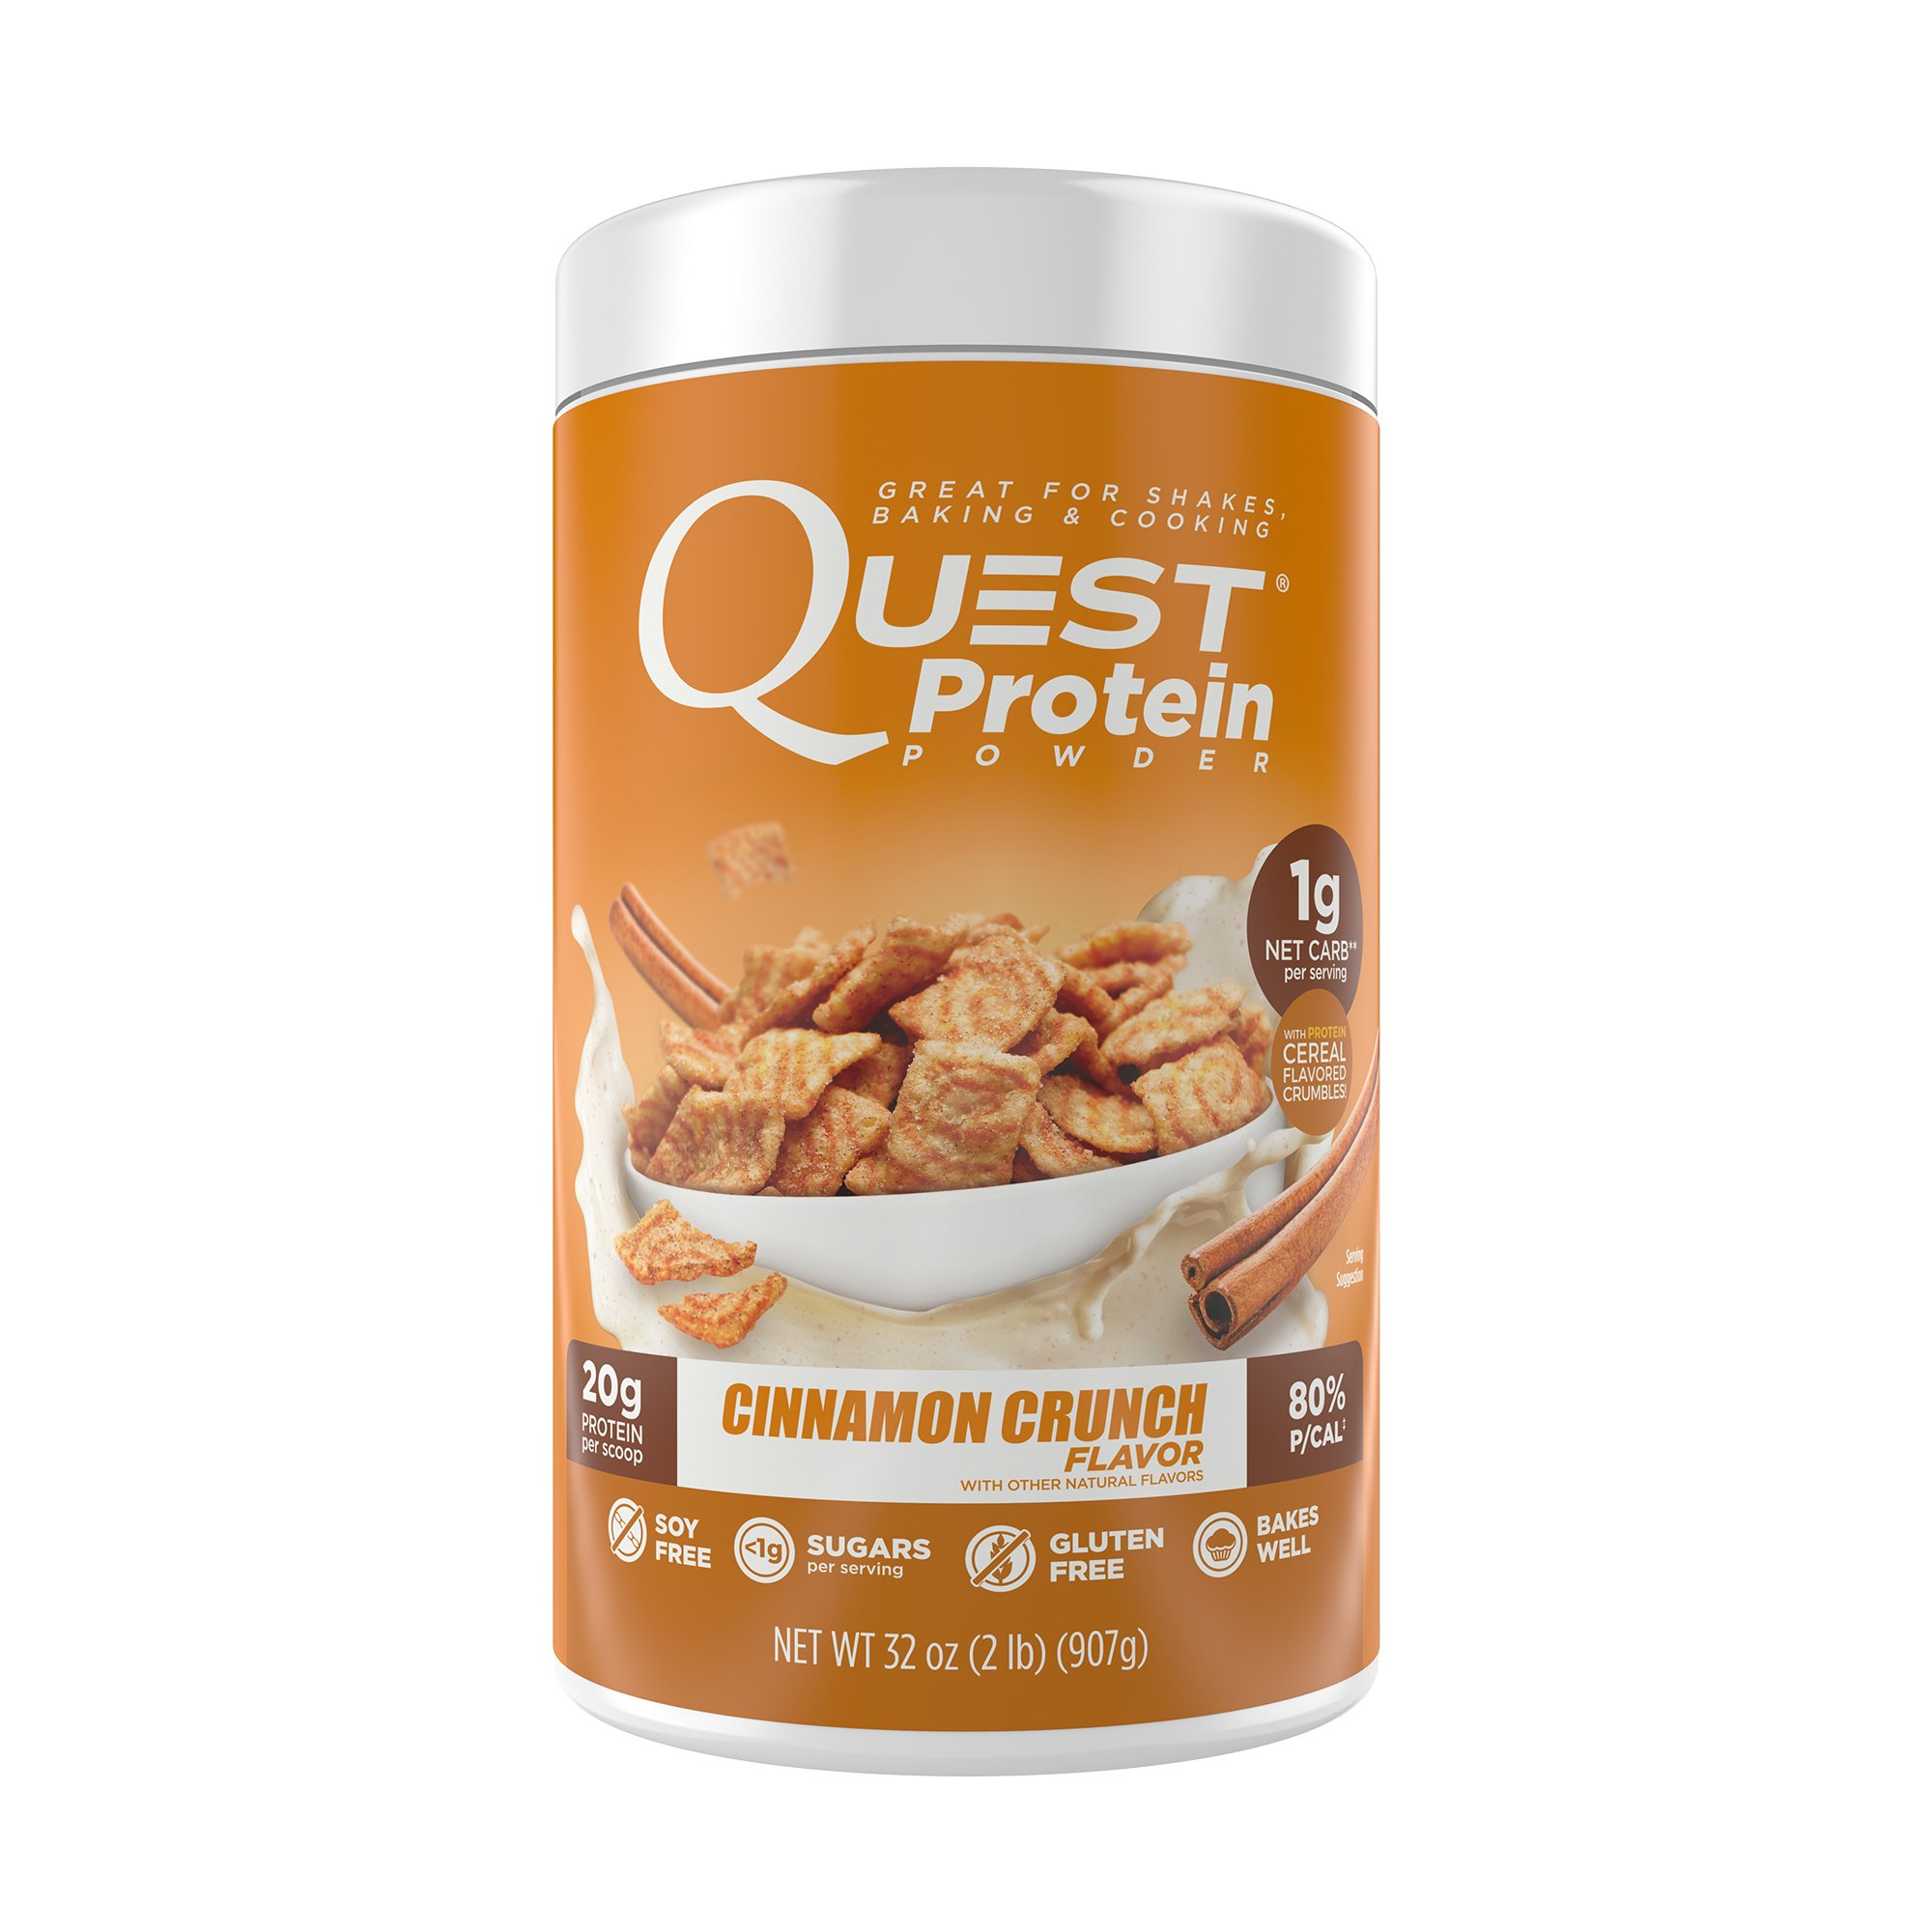 Quest Nutrition Protein Powder, Cinnamon Crunch, 20g Protein, 1g Net Carbs, 80% P/Cals, 2lb Tub, High Protein, Low Carb, Gluten Free, Soy Free, Packaging May Vary